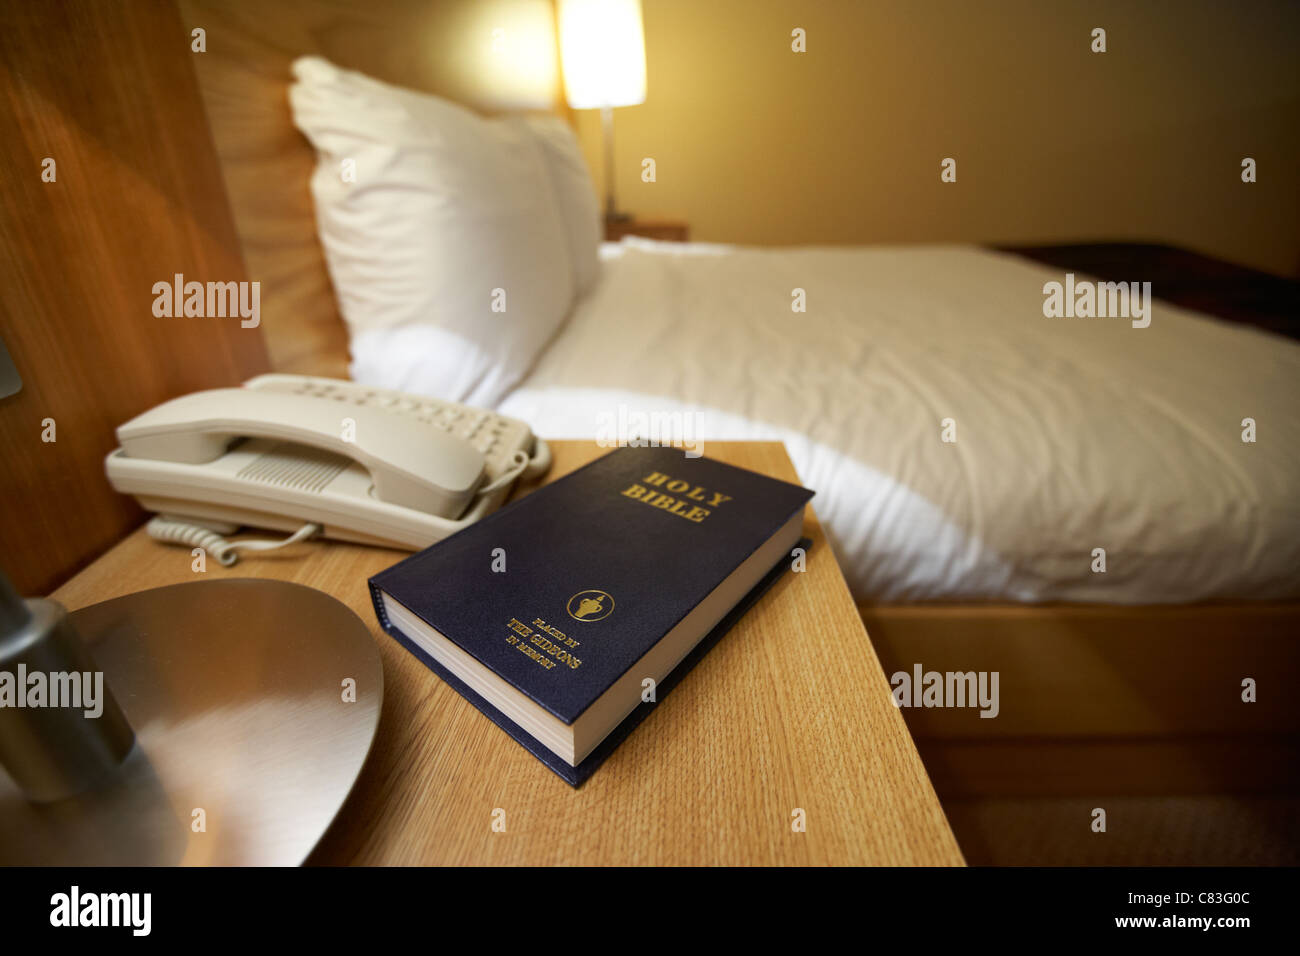 holy bible placed by the gideons on the beside table in the interior of a 4 star hotel bedroom - Stock Image